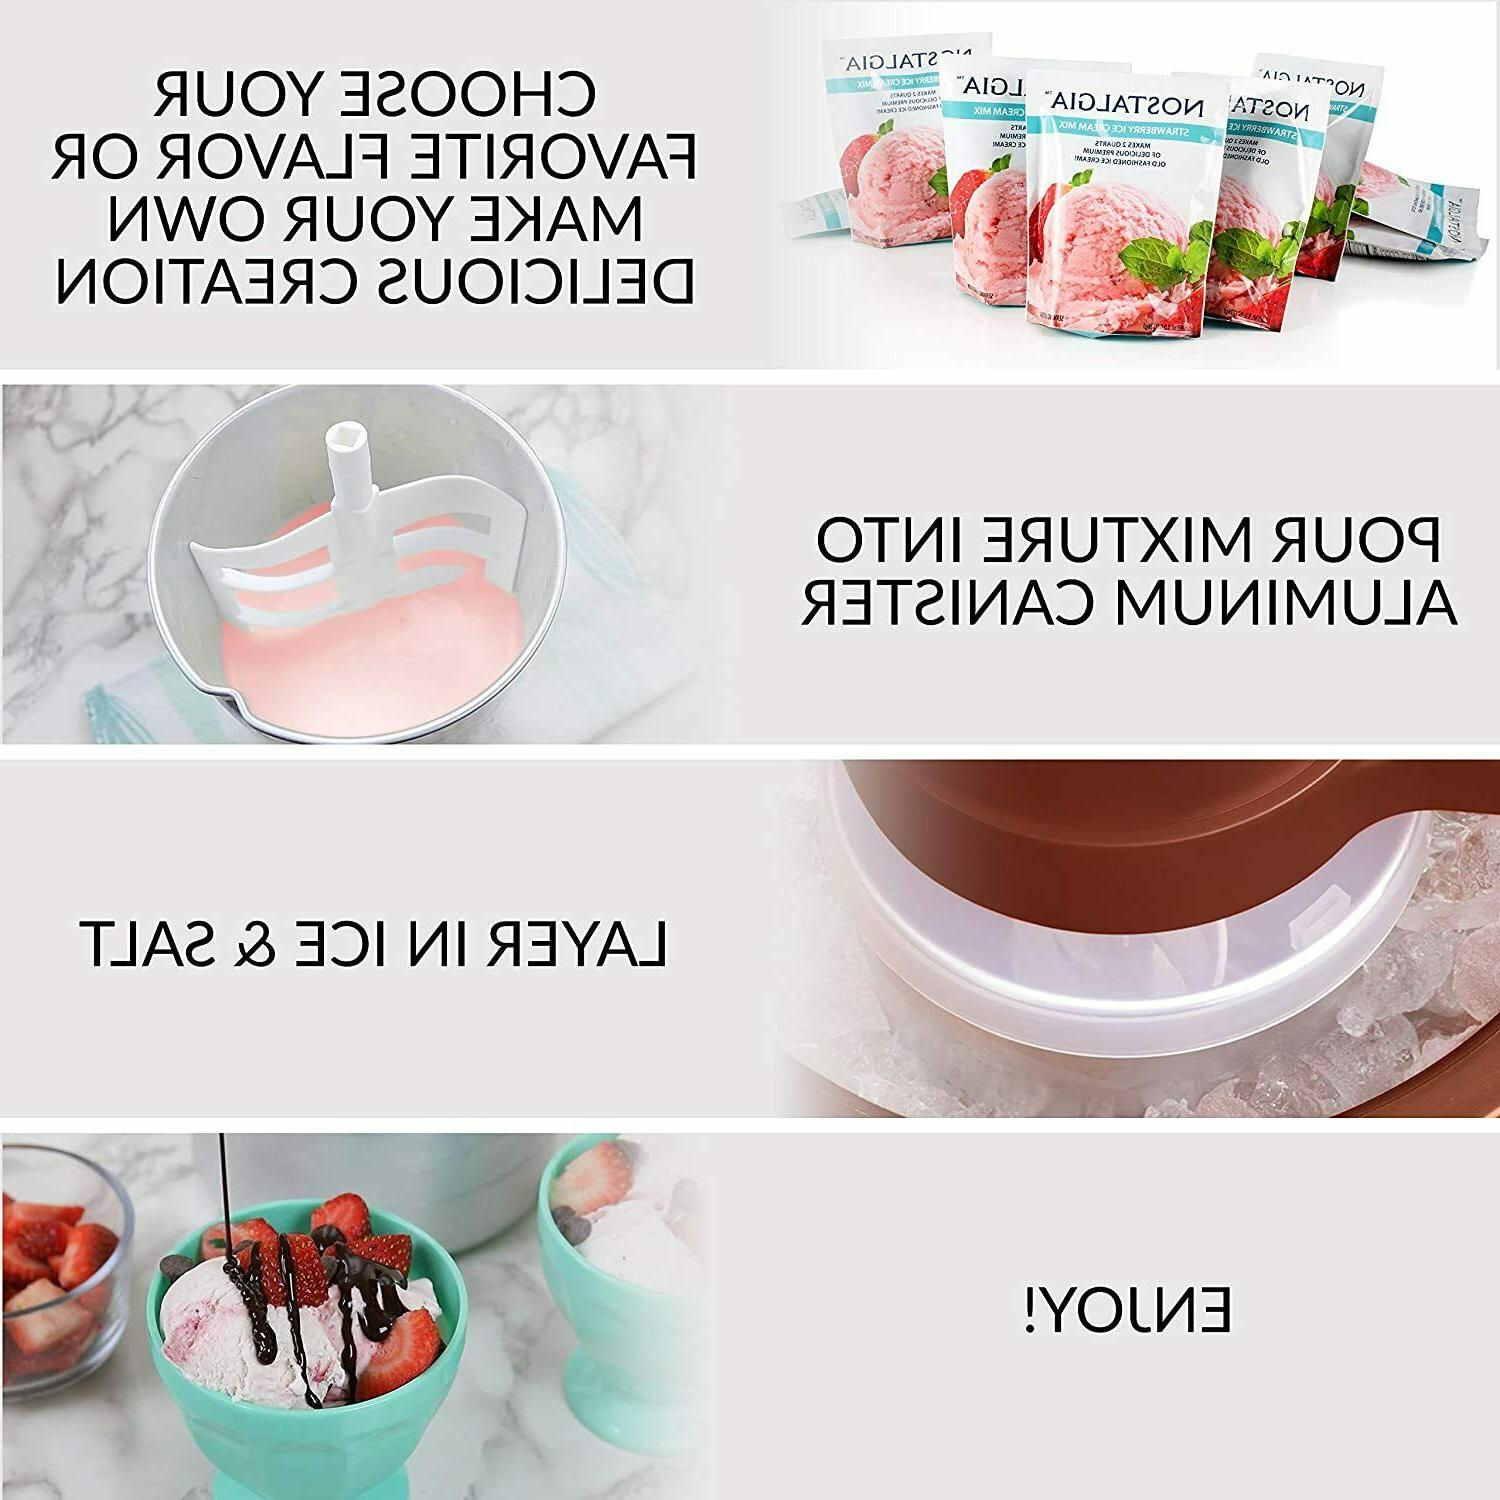 Electric Ice Cream Maker With Makes 4-Quarts in